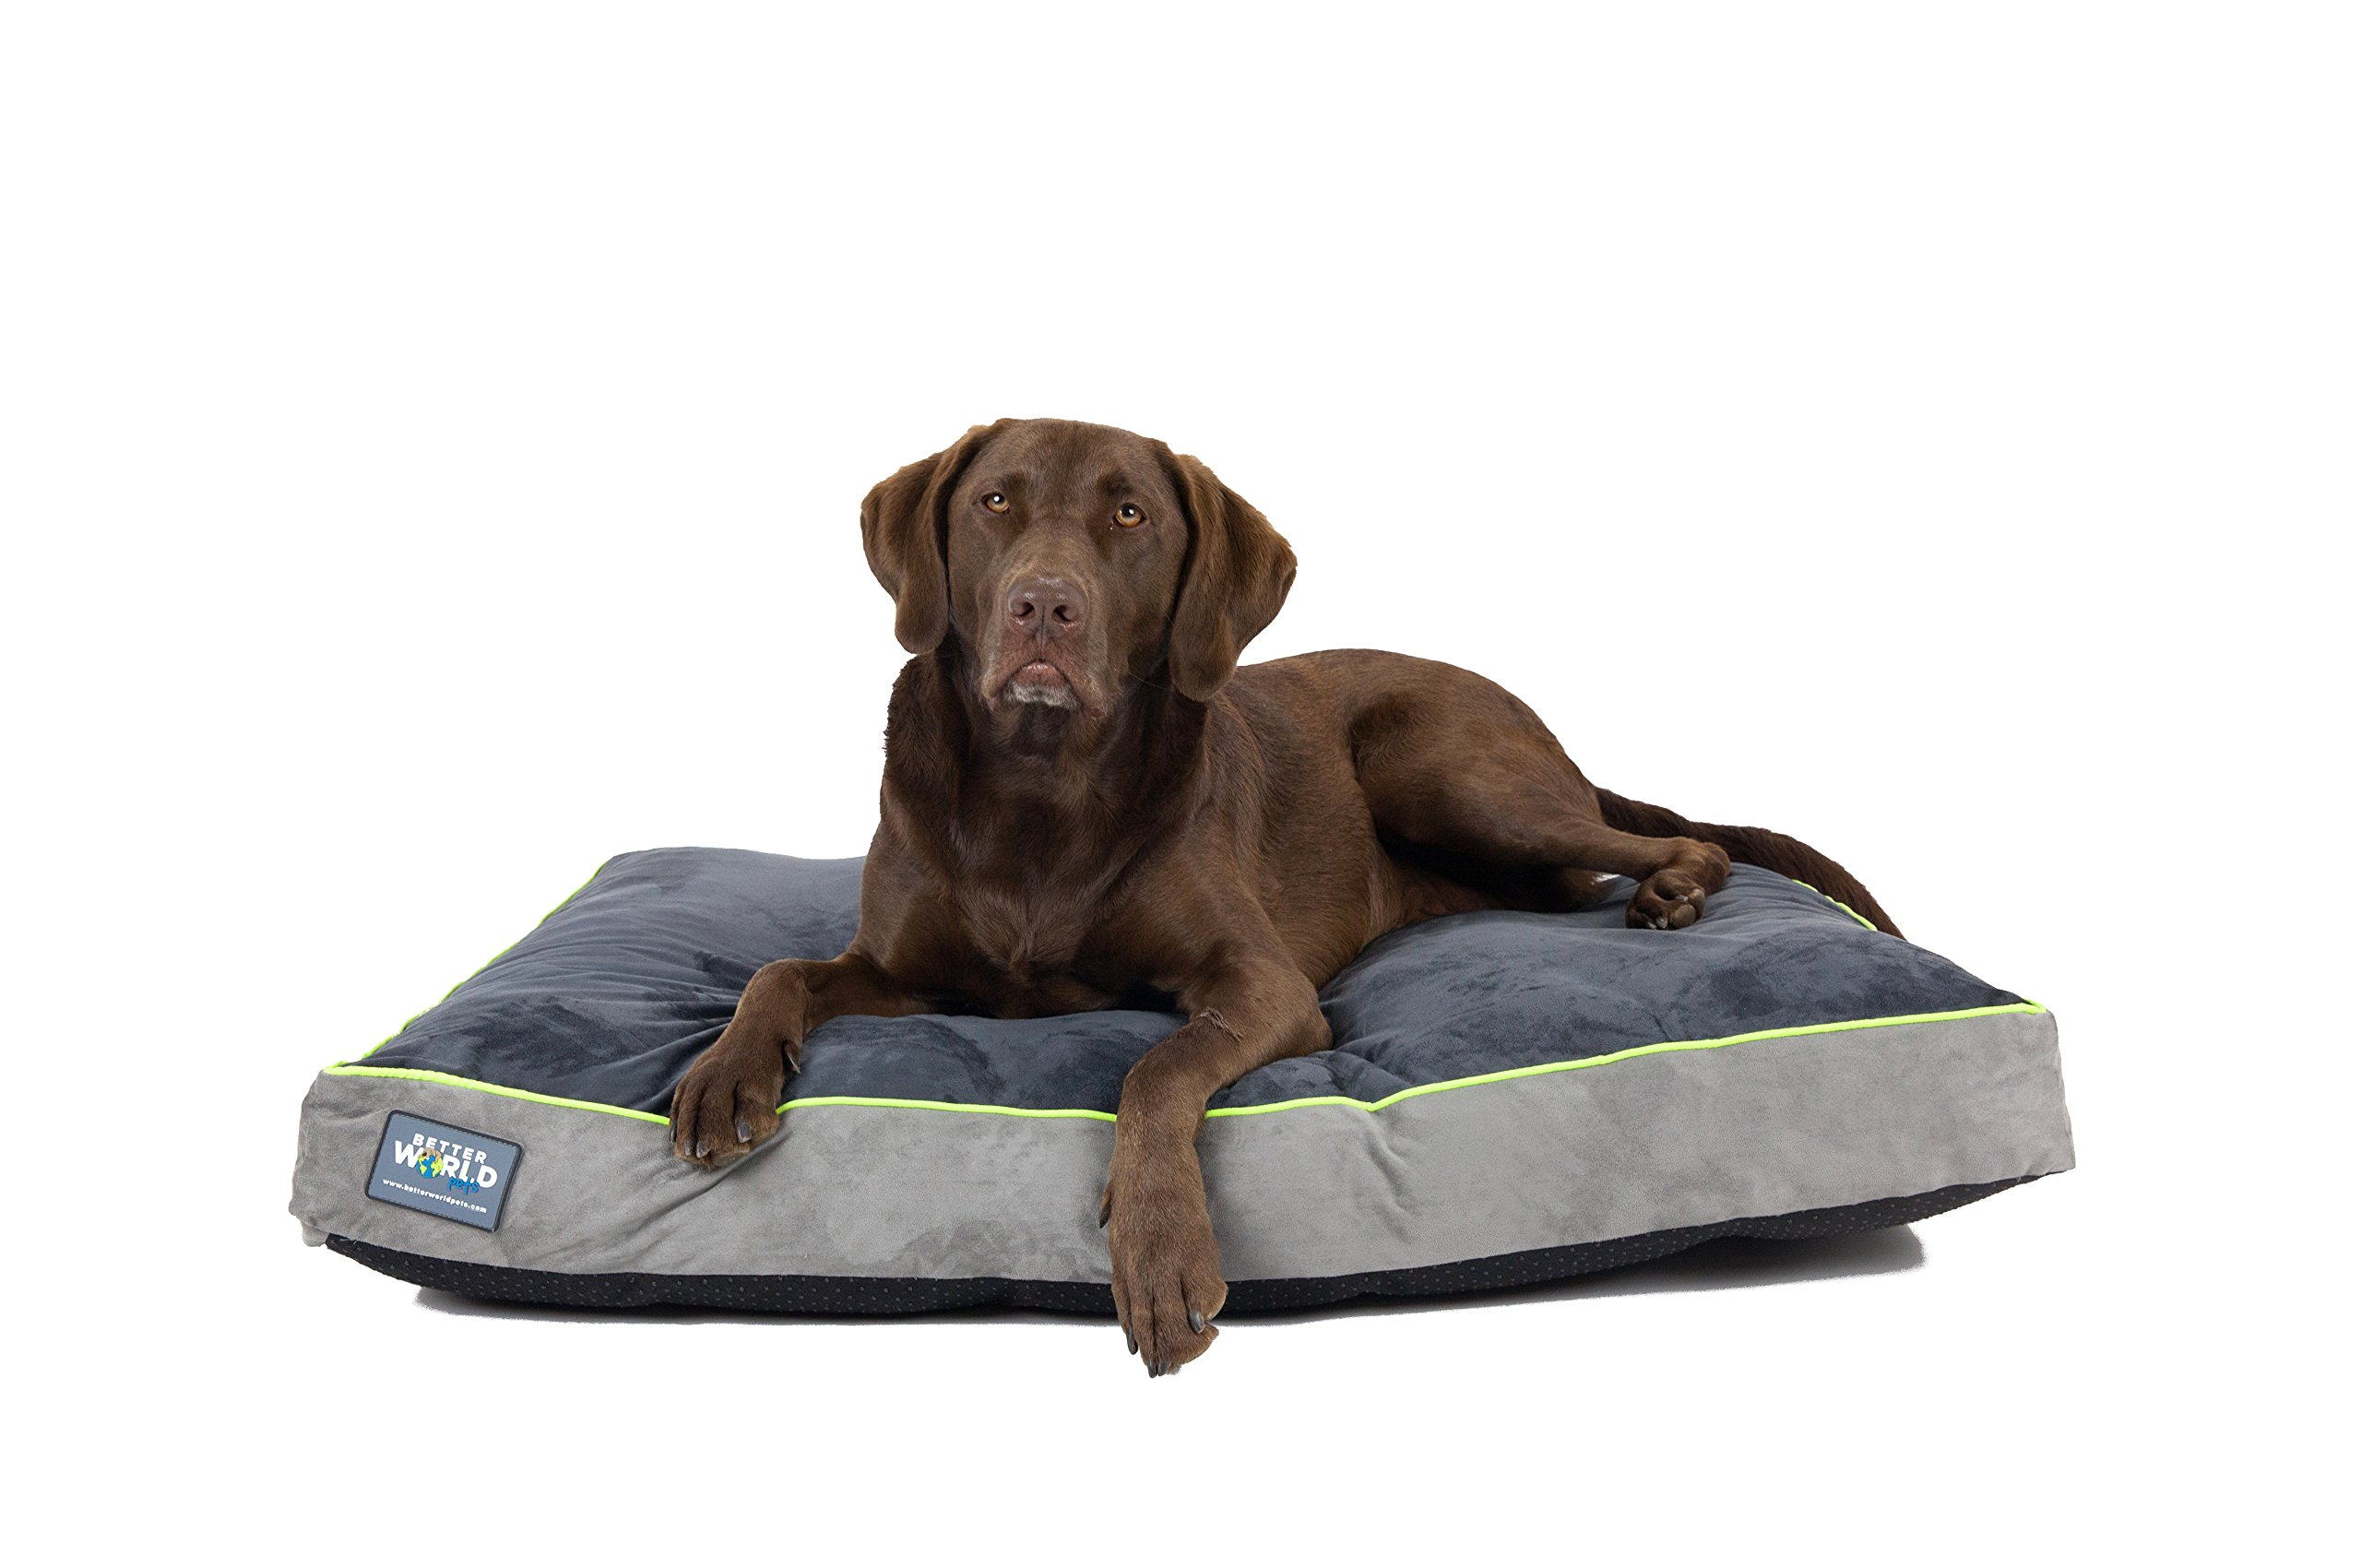 Better World Pets 5-Inch Thick Waterproof Orthopedic Memory Foam Dog Bed with 180 GSM Removable Washable Cover (Large, Grey with Rave Green trim)